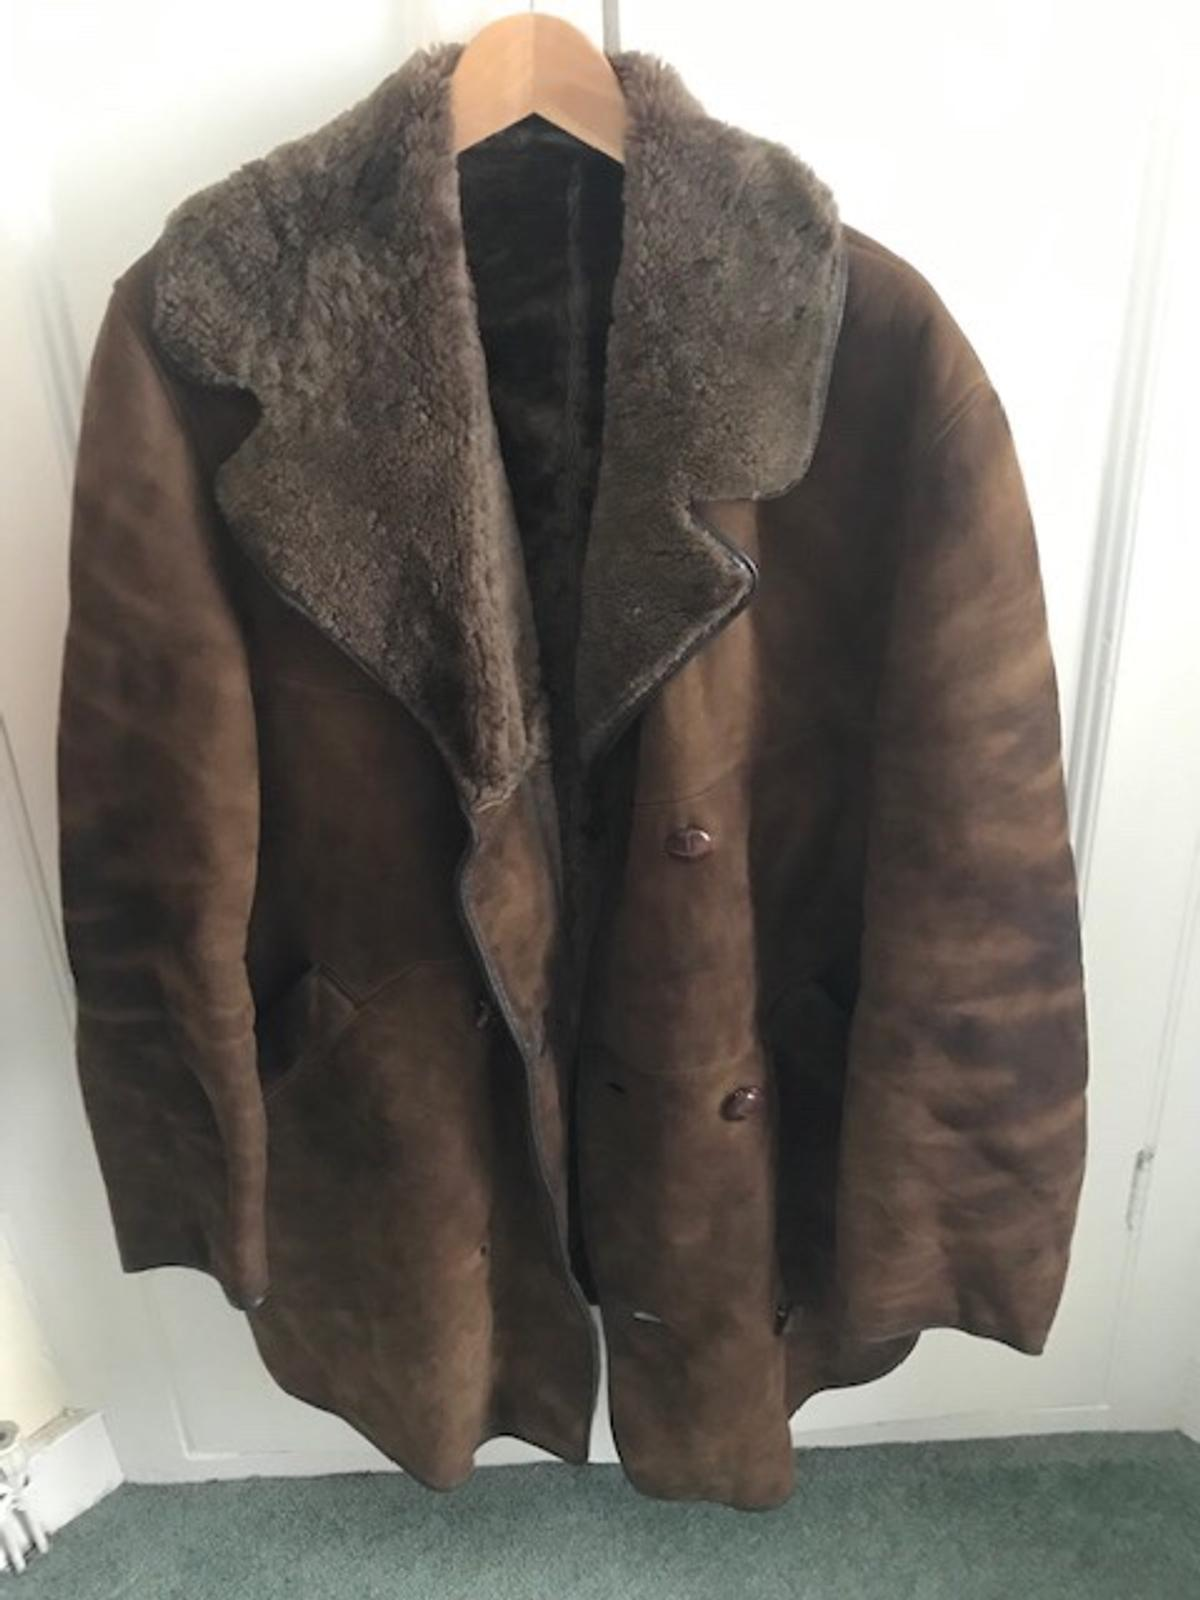 Sheepskin Jacket Mens In E14 Hamlets For 50 00 For Sale Shpock